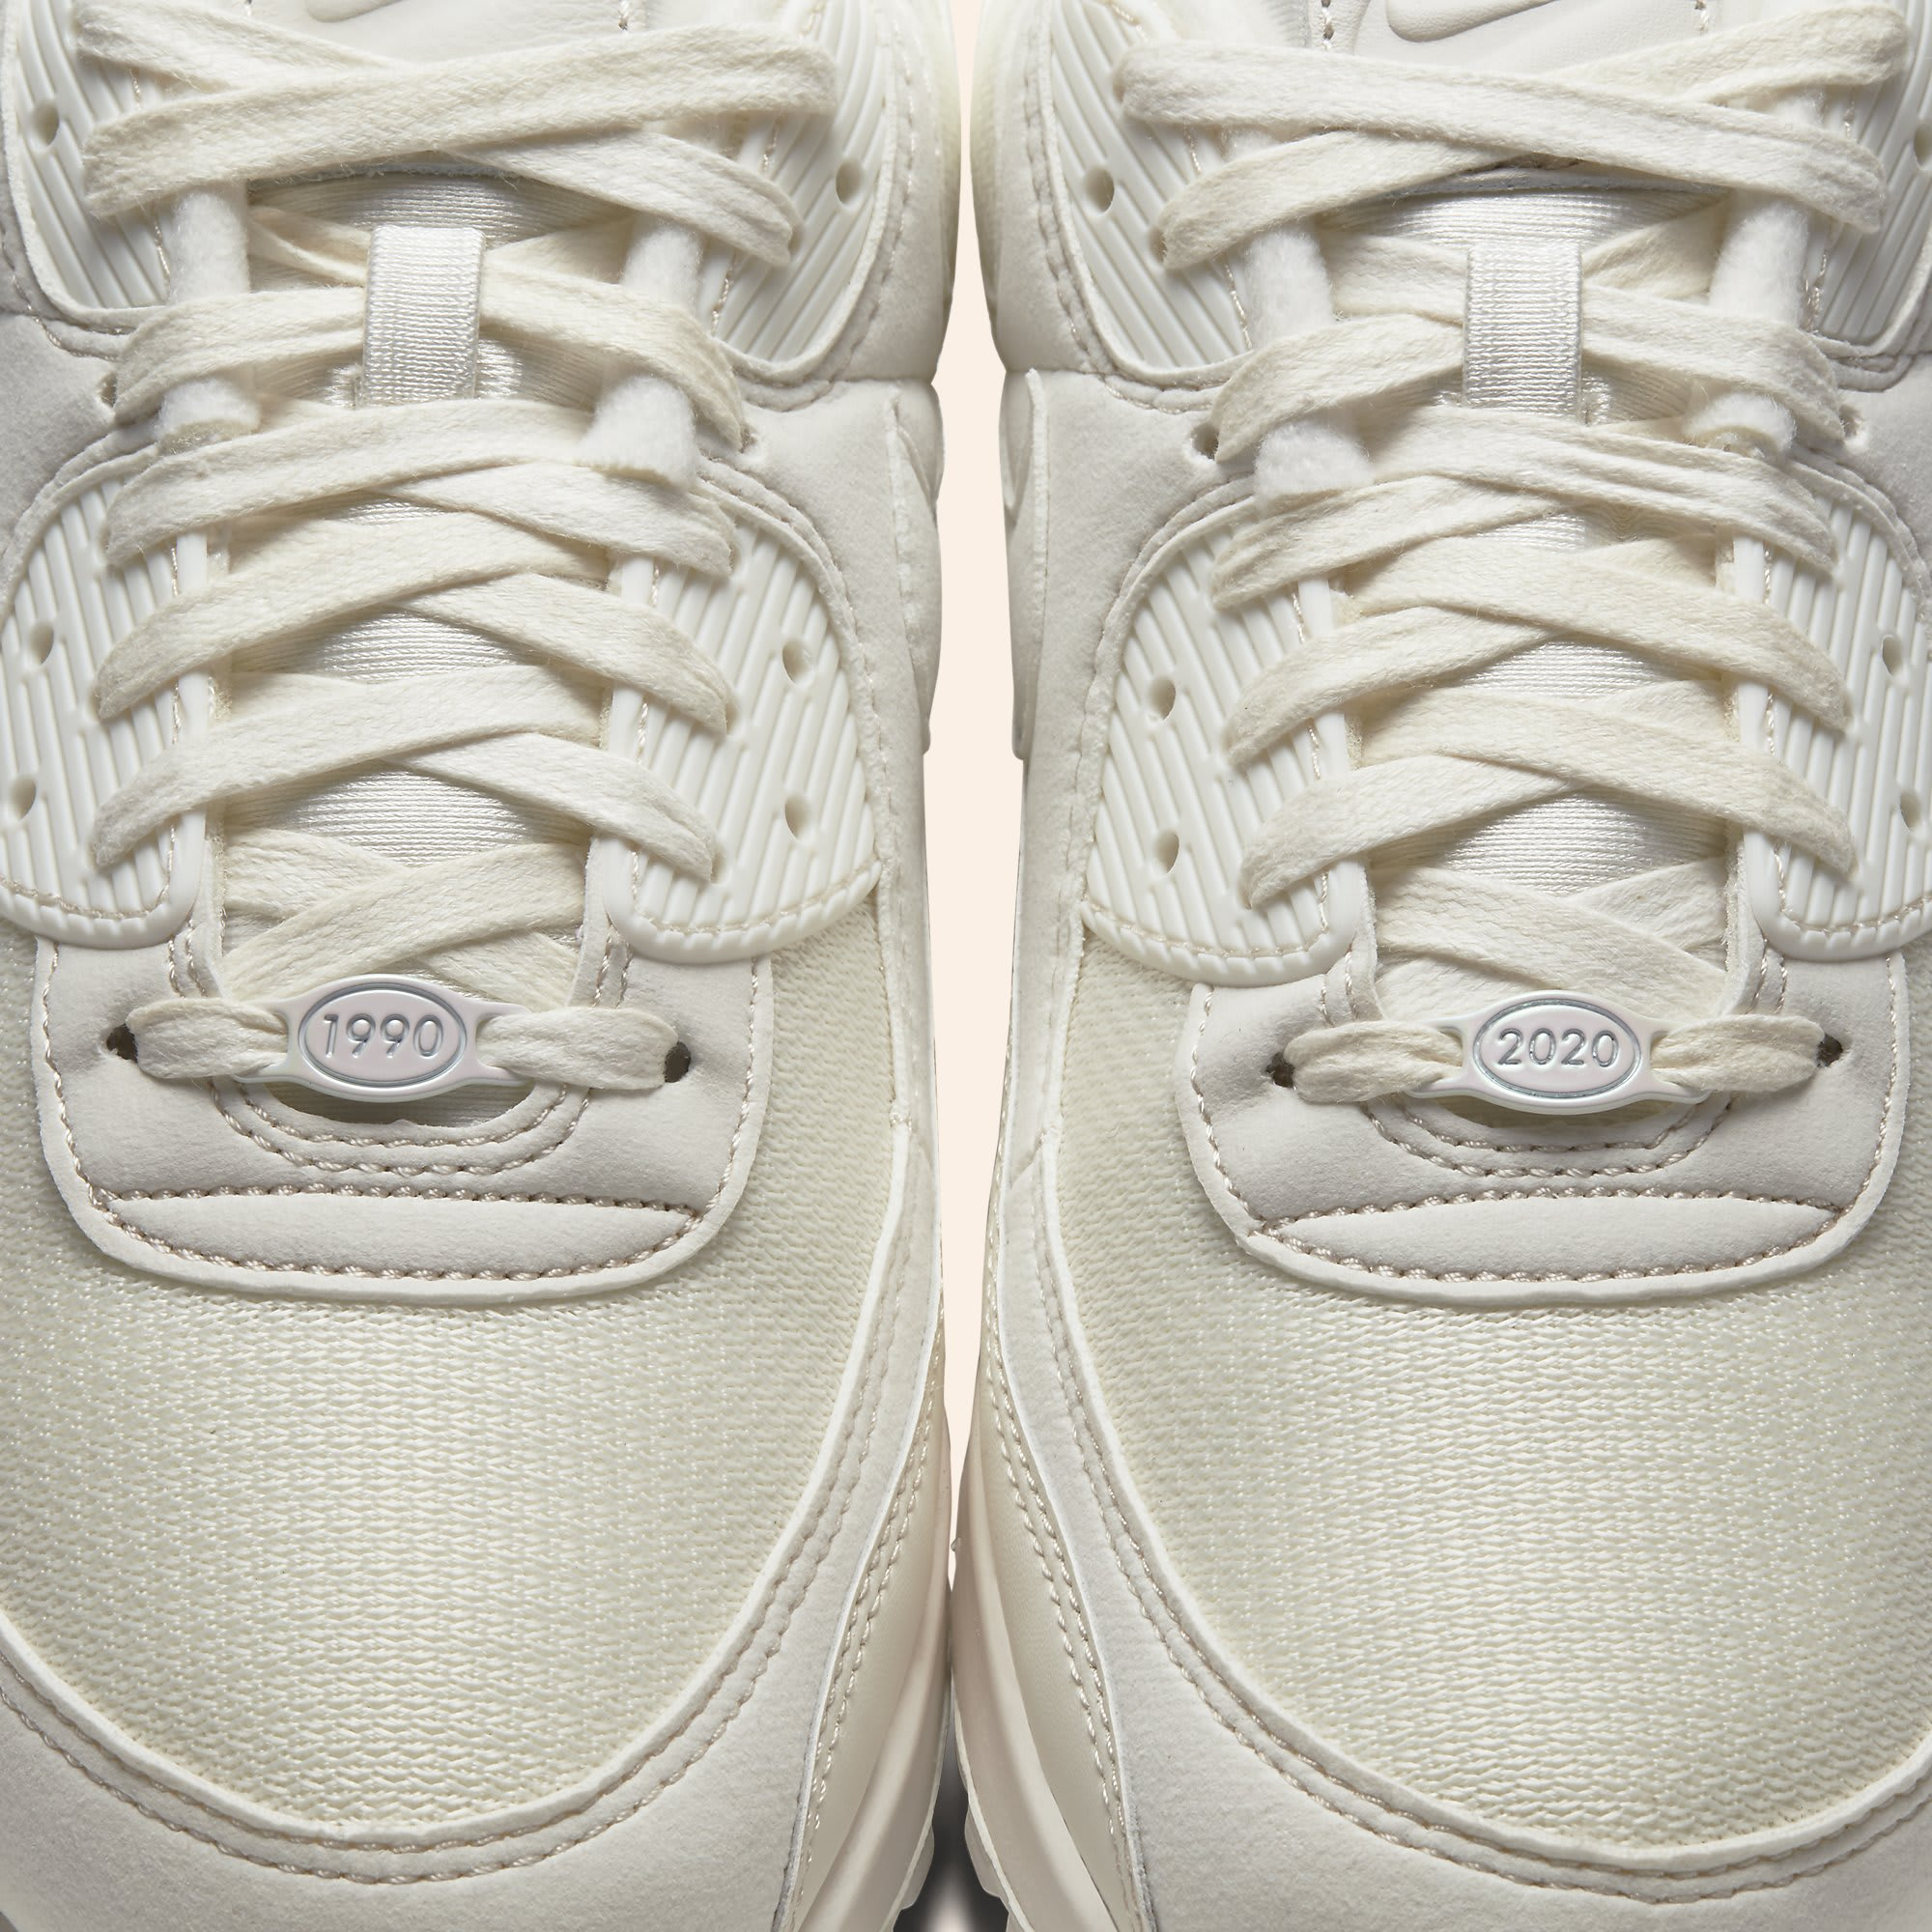 nike-air-max-90-30th-anniversary-sail-ct2007-100